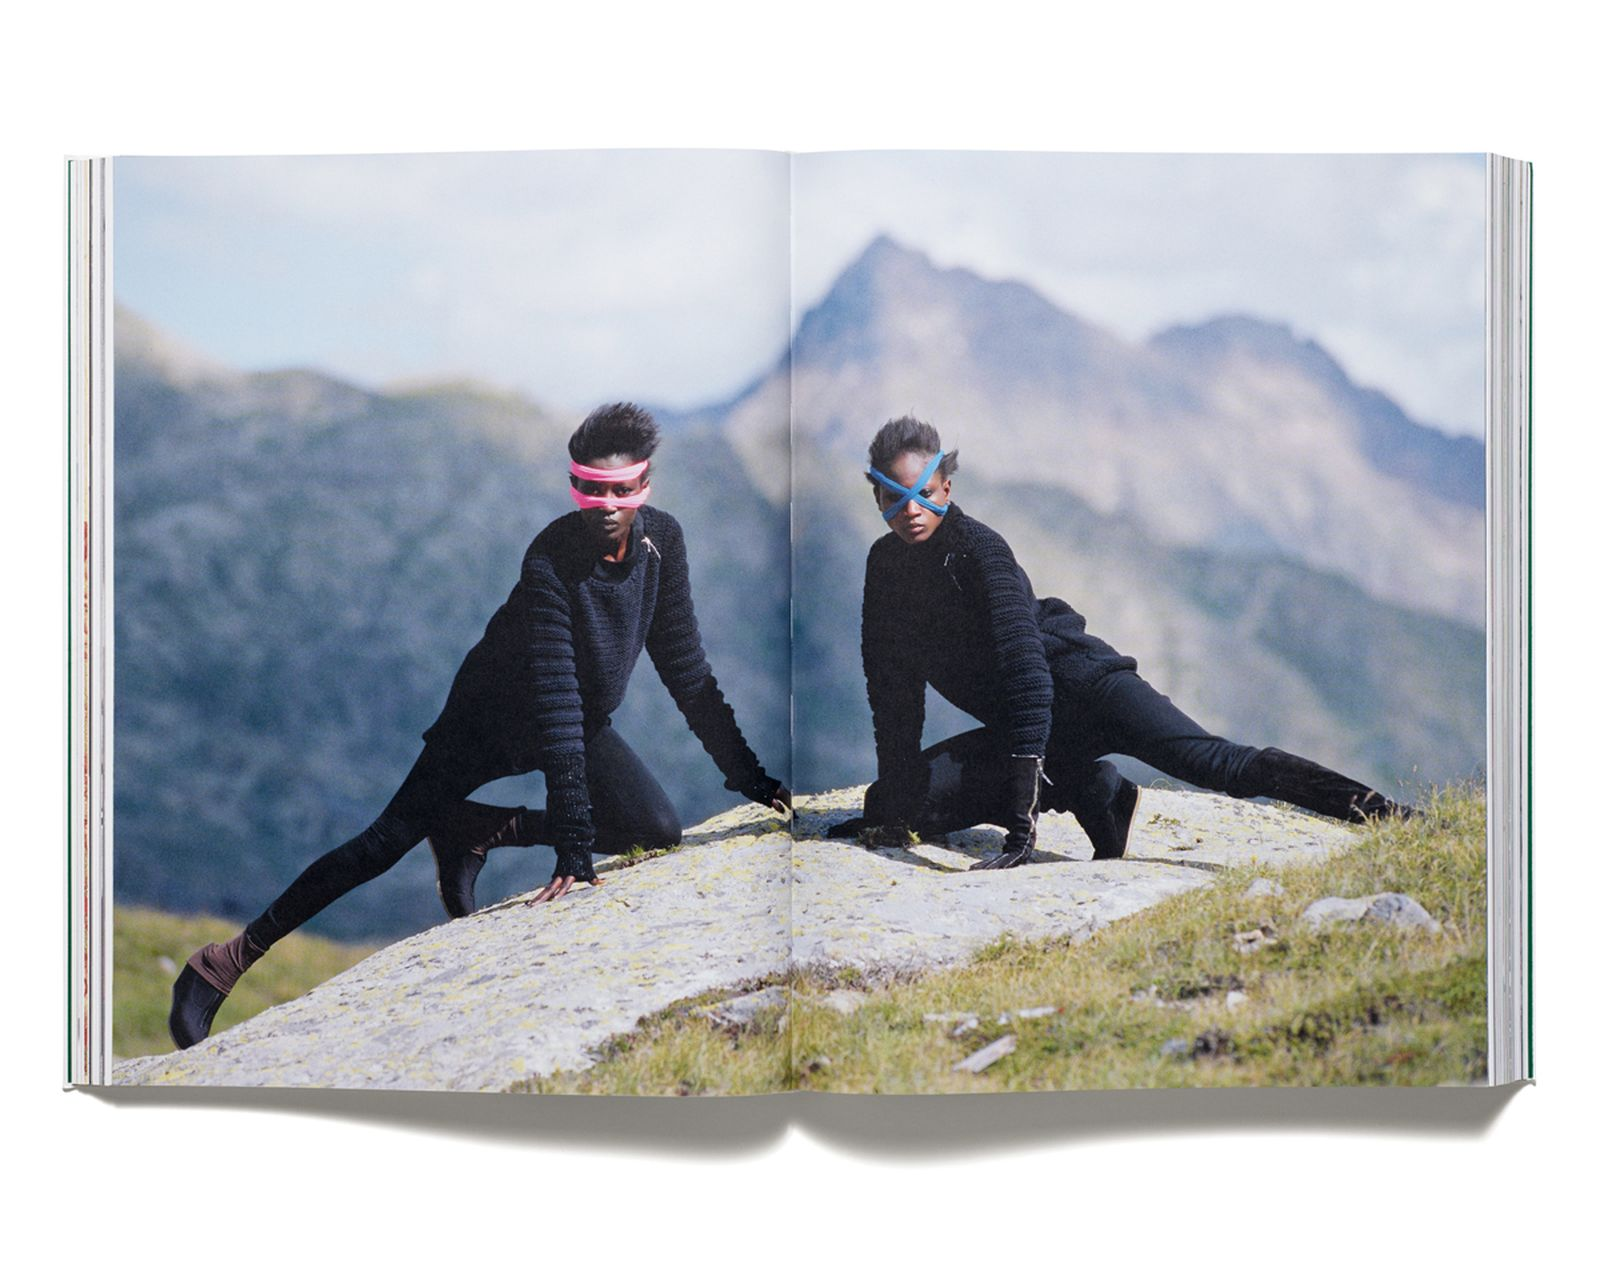 AIN'T NO MOUNTAIN HIGH ENOUGH - Photographs by Hans Feurer for 'Acne Paper' issue 5, 2007. Styling by Marie Chaix.